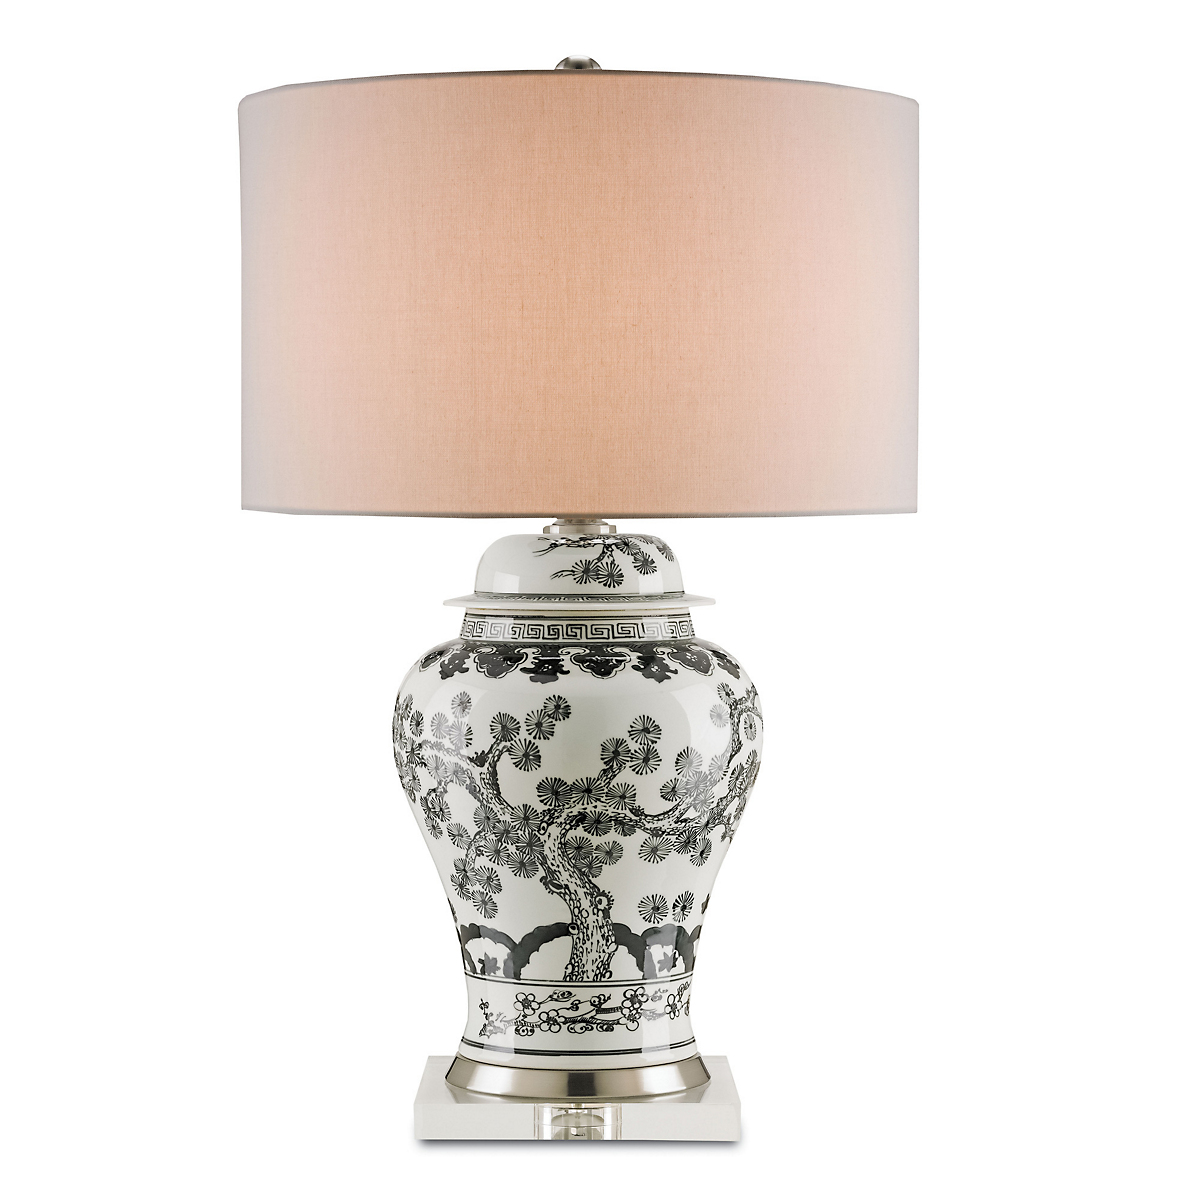 Currey & Company Wilde Table Lamp